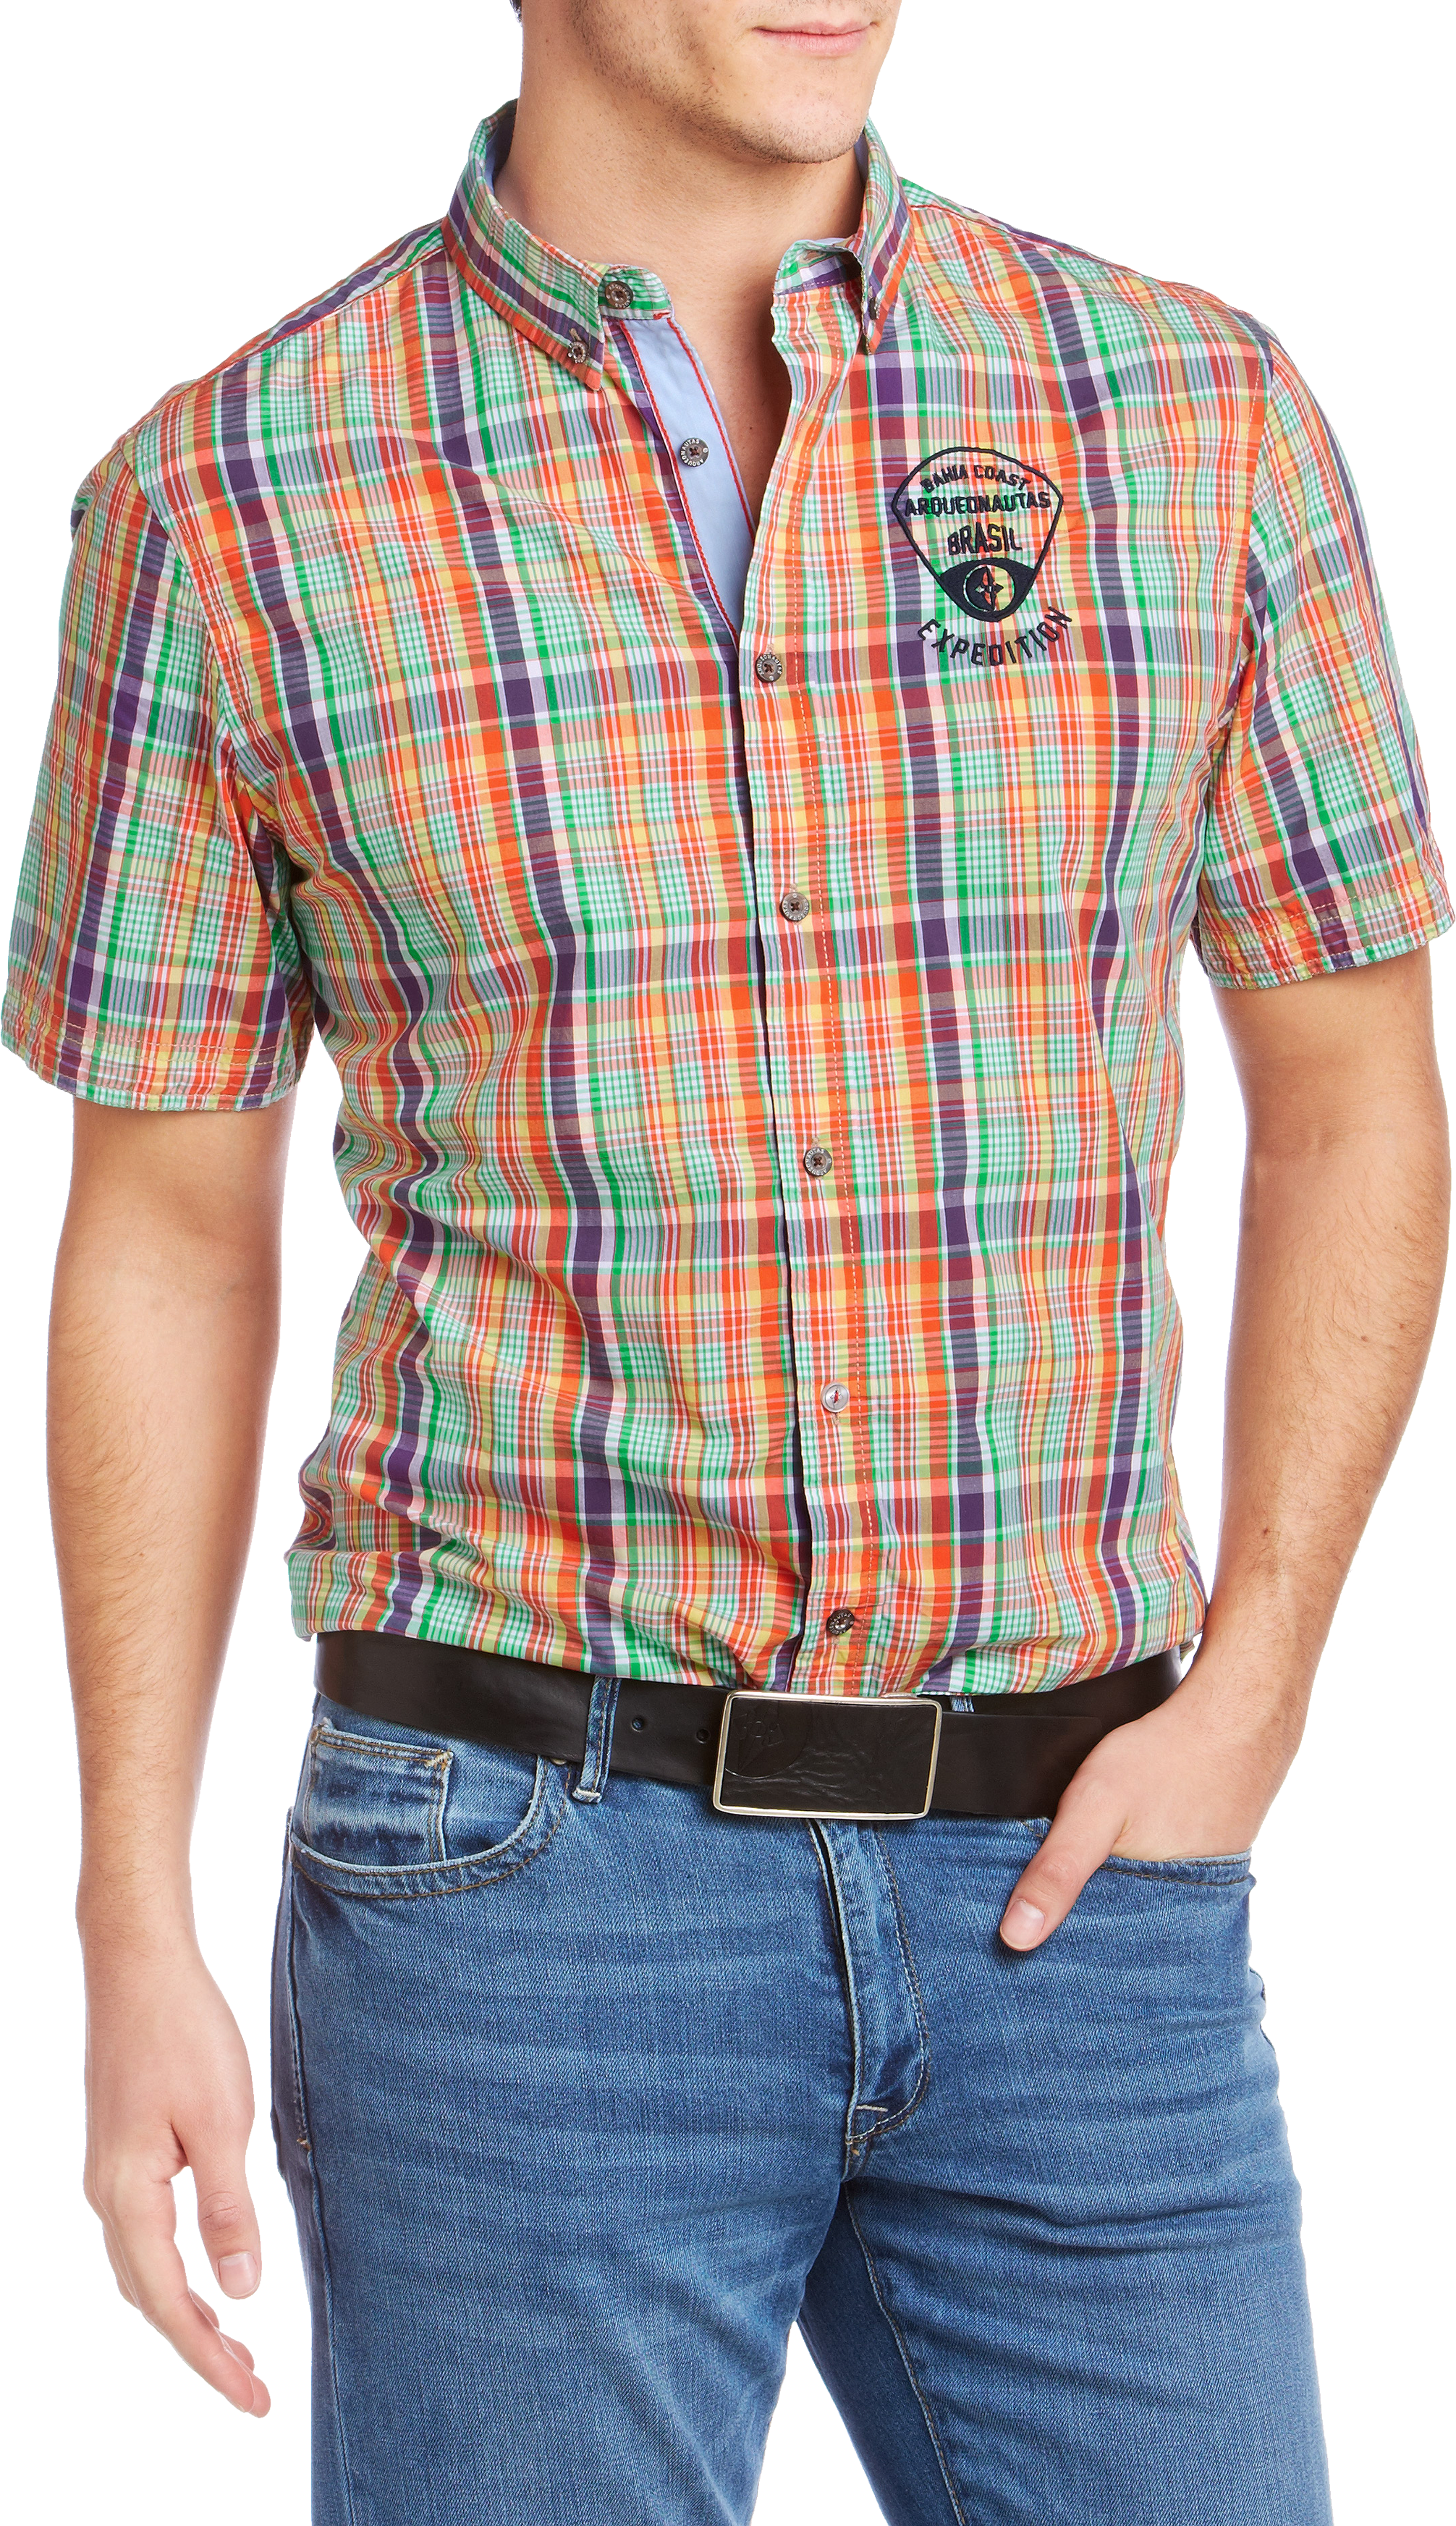 Men polo shirt PNG image